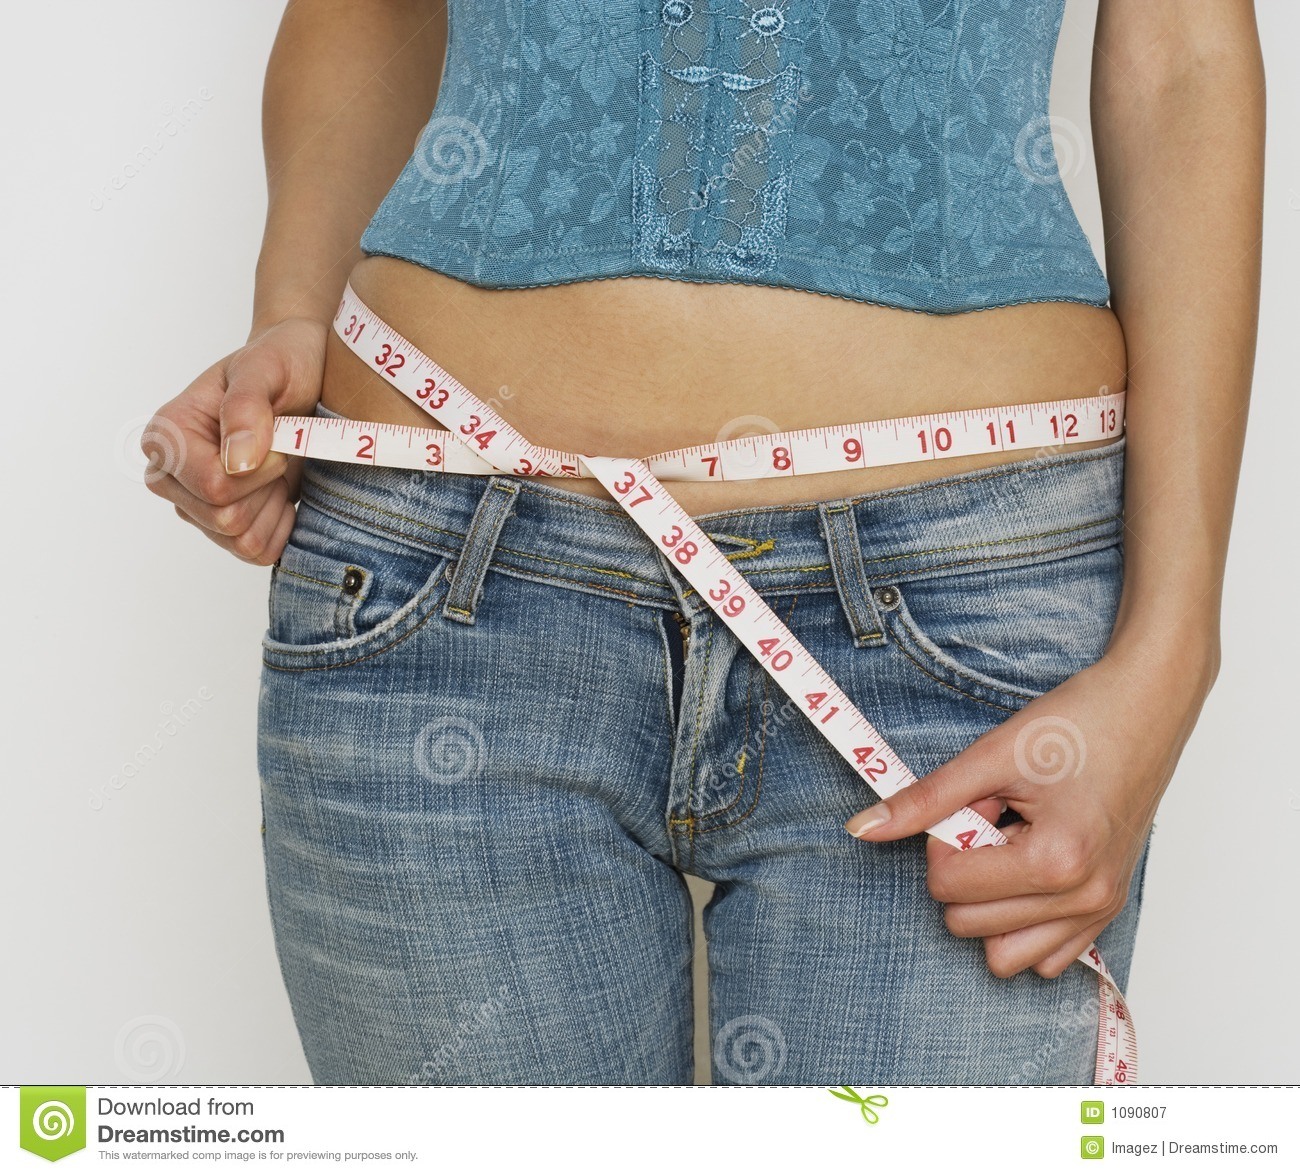 Apr 22,  · It's actually sometimes more confusing with dress pants sizing, but for a different reason - some dress pants are vanity sized, especially low rise ones from mass marketers, who size them like jeans (above), while others are sized by an exact measurement of the waist.